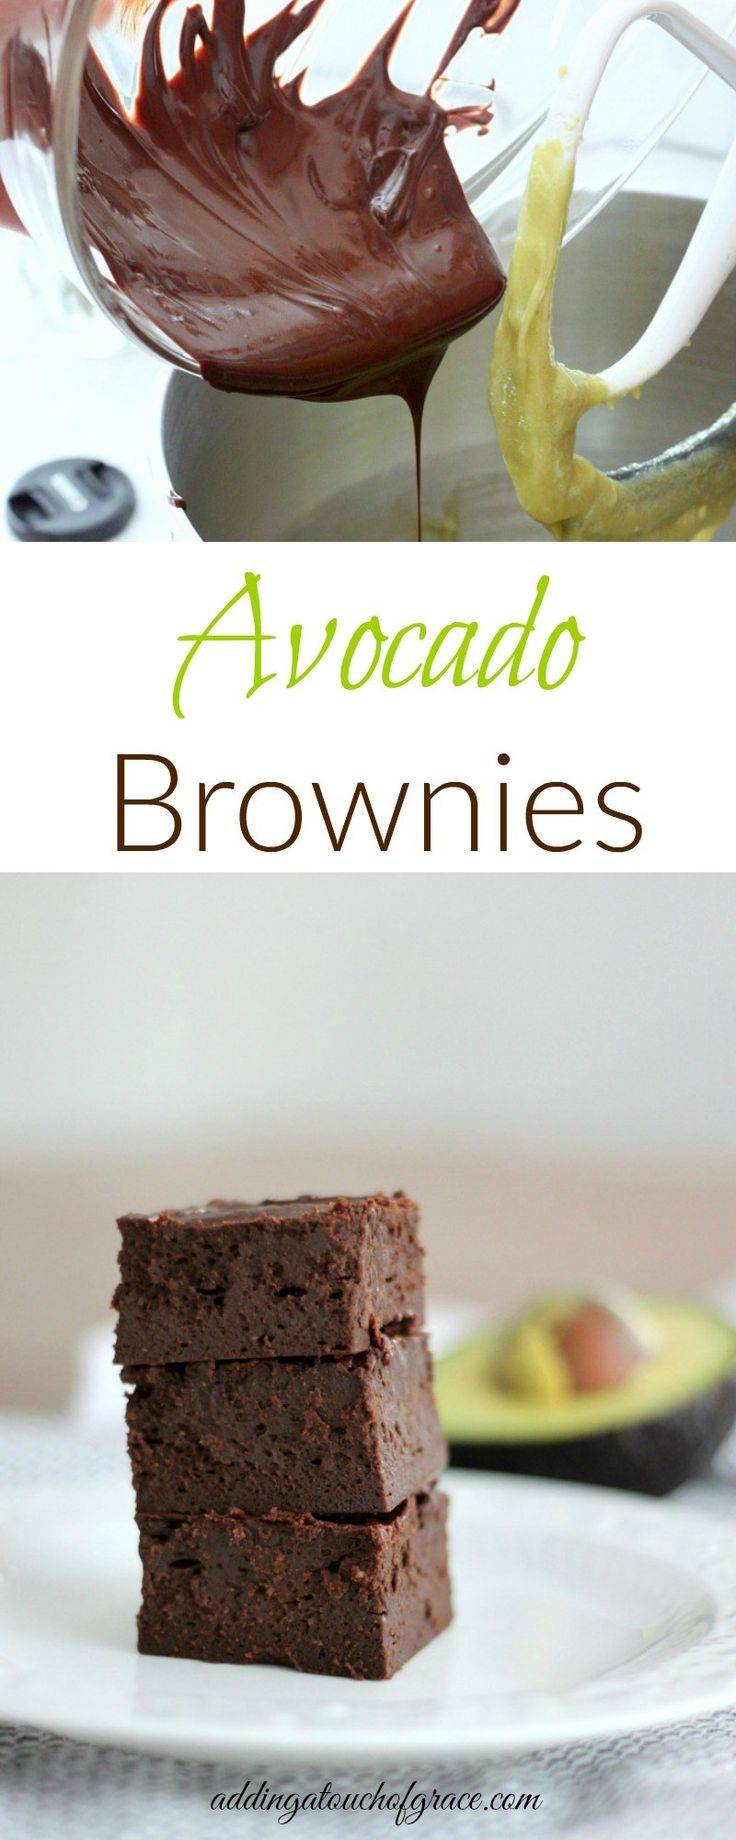 These fudgy avocado brownies are dense and moist and full of chocolate flavor!